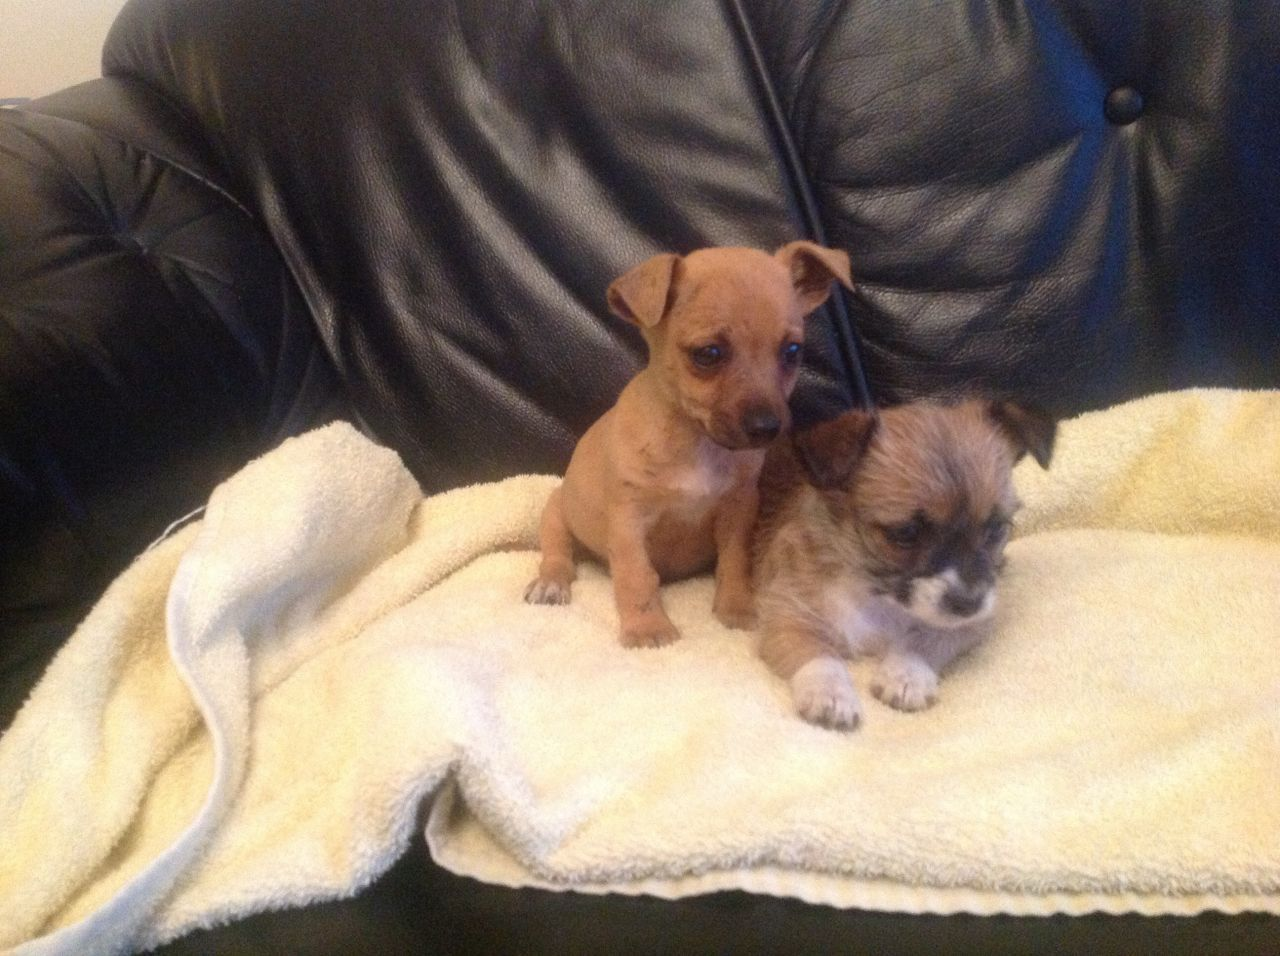 Chihuahua X Jack Russell Puppies For Sale 51d333c893b57 Jpg 1280 956 Jack Russell Puppies Jack Russell Cute Little Dogs